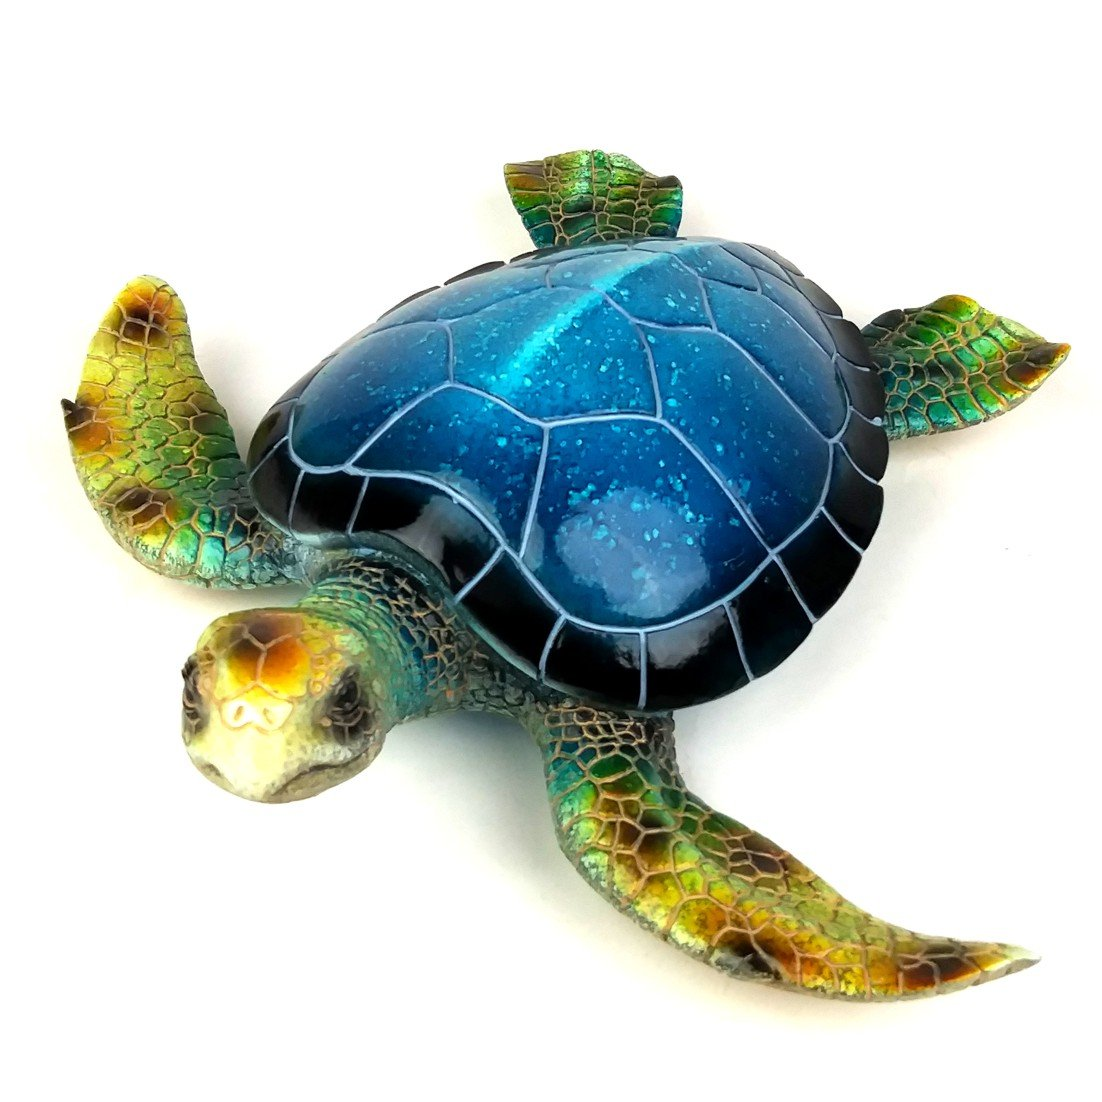 Nautical Gardens 16 Inch Large Blue Sea Turtle Figurine